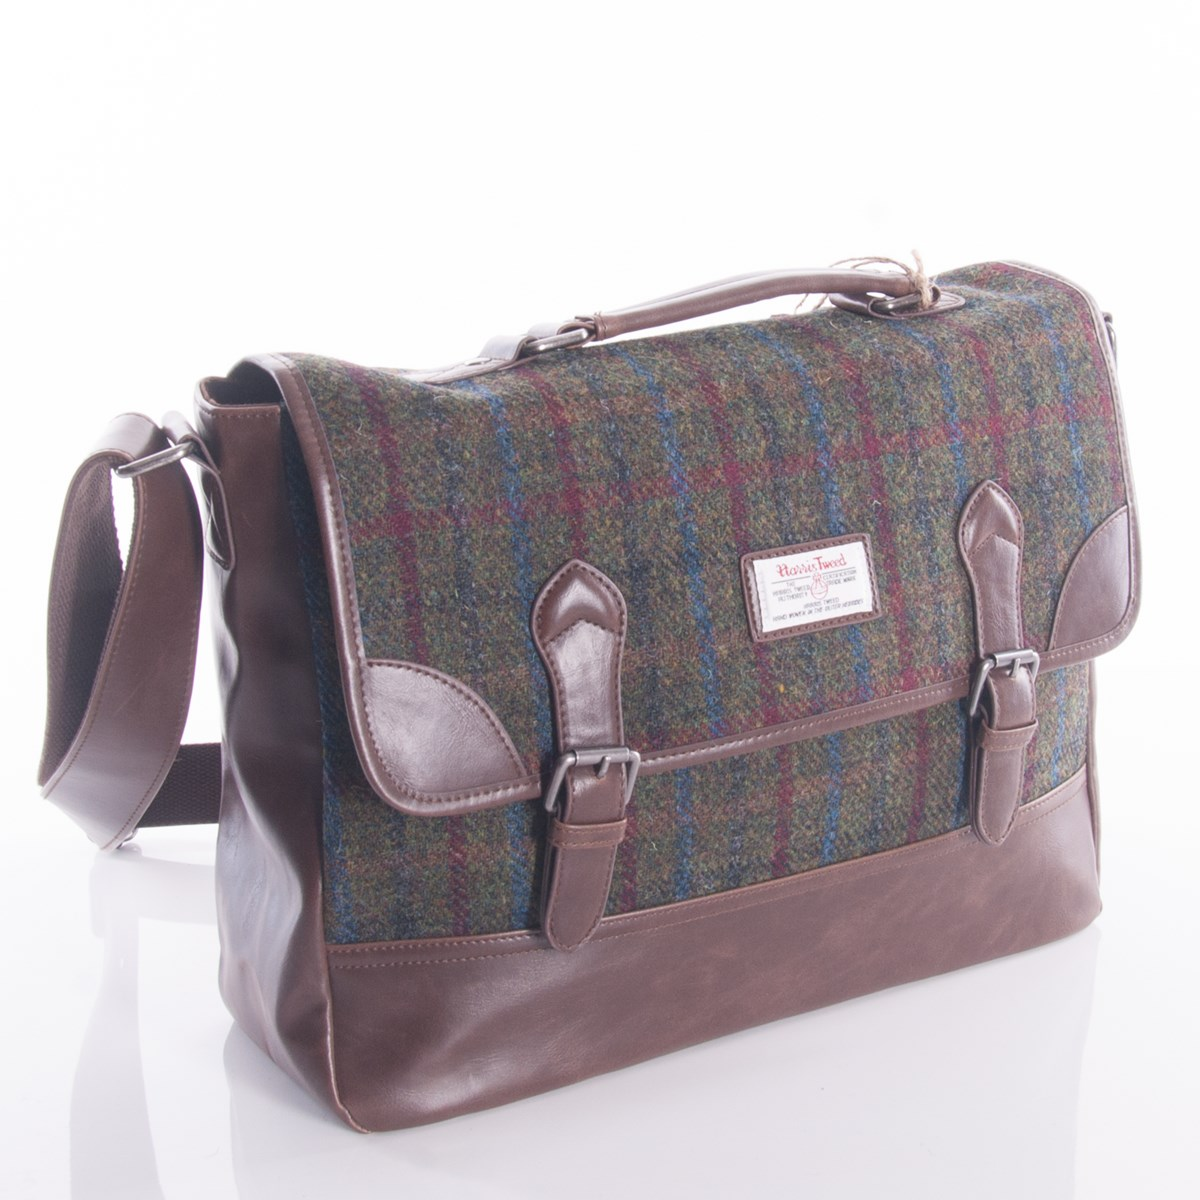 569106e77dab Green Harris Tweed Briefcase by The British Bag Company - The Kilt Store